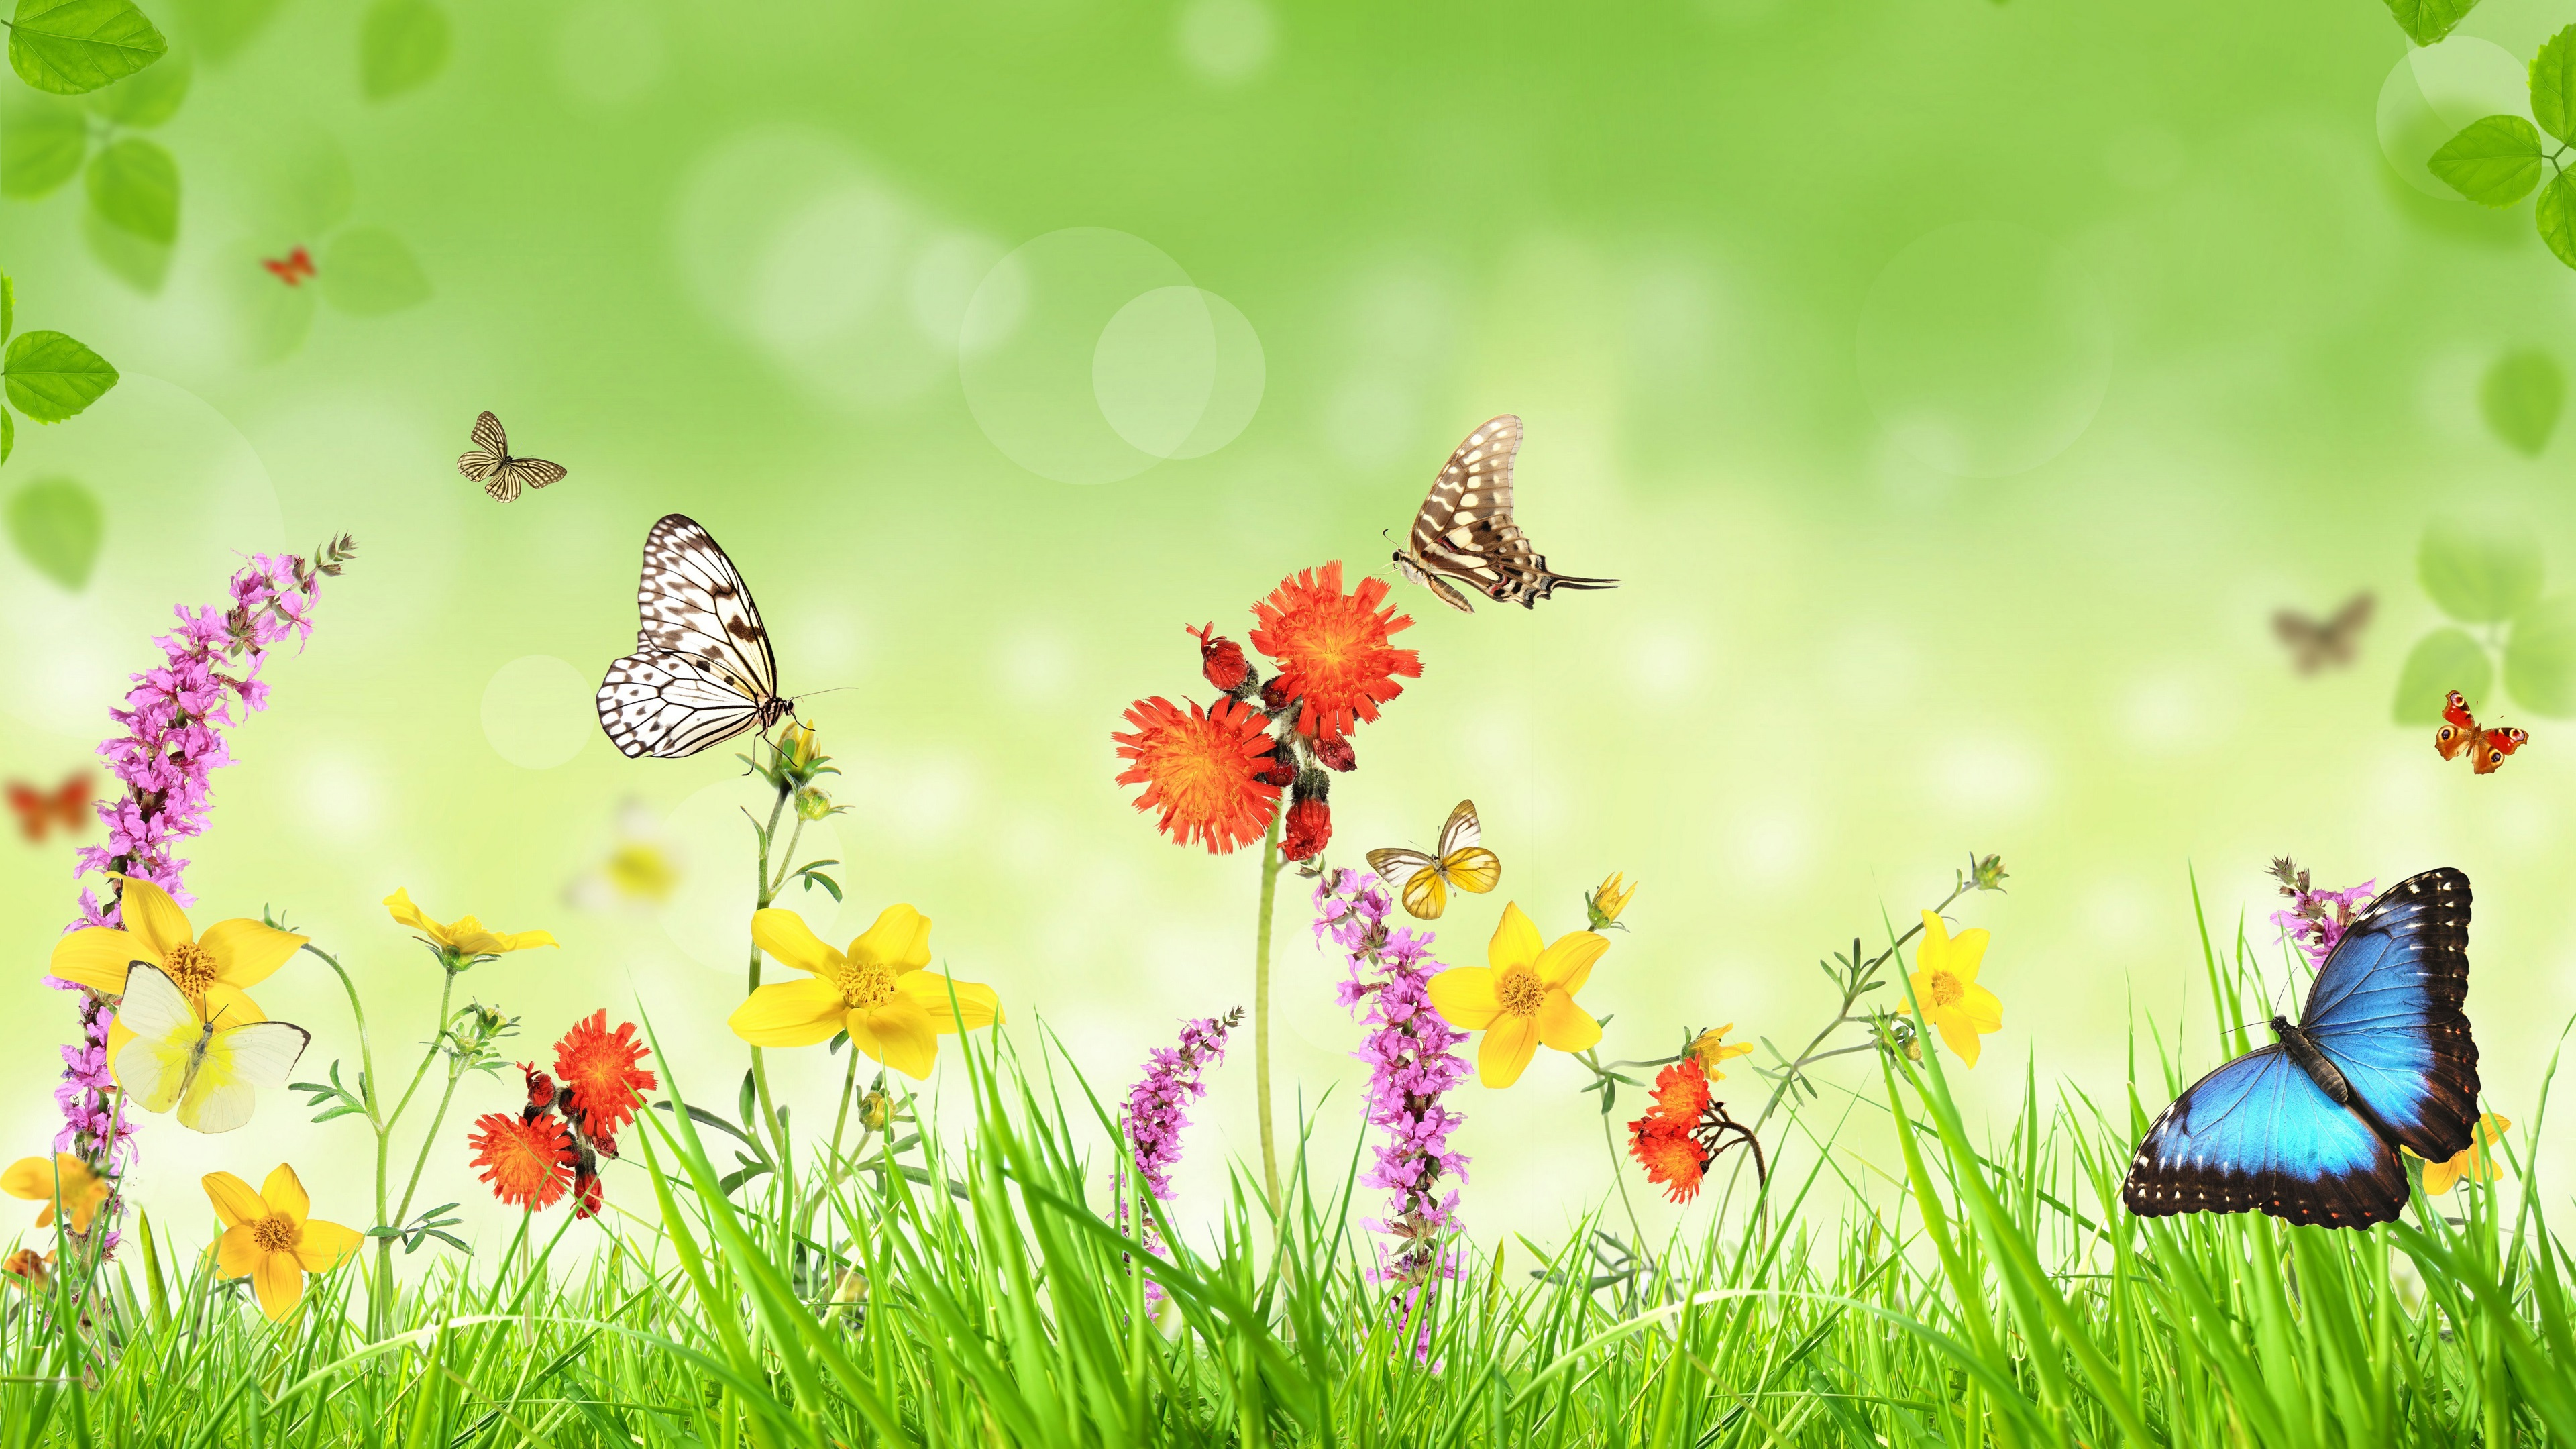 Spring Flowers Grass Butterfly Green Background